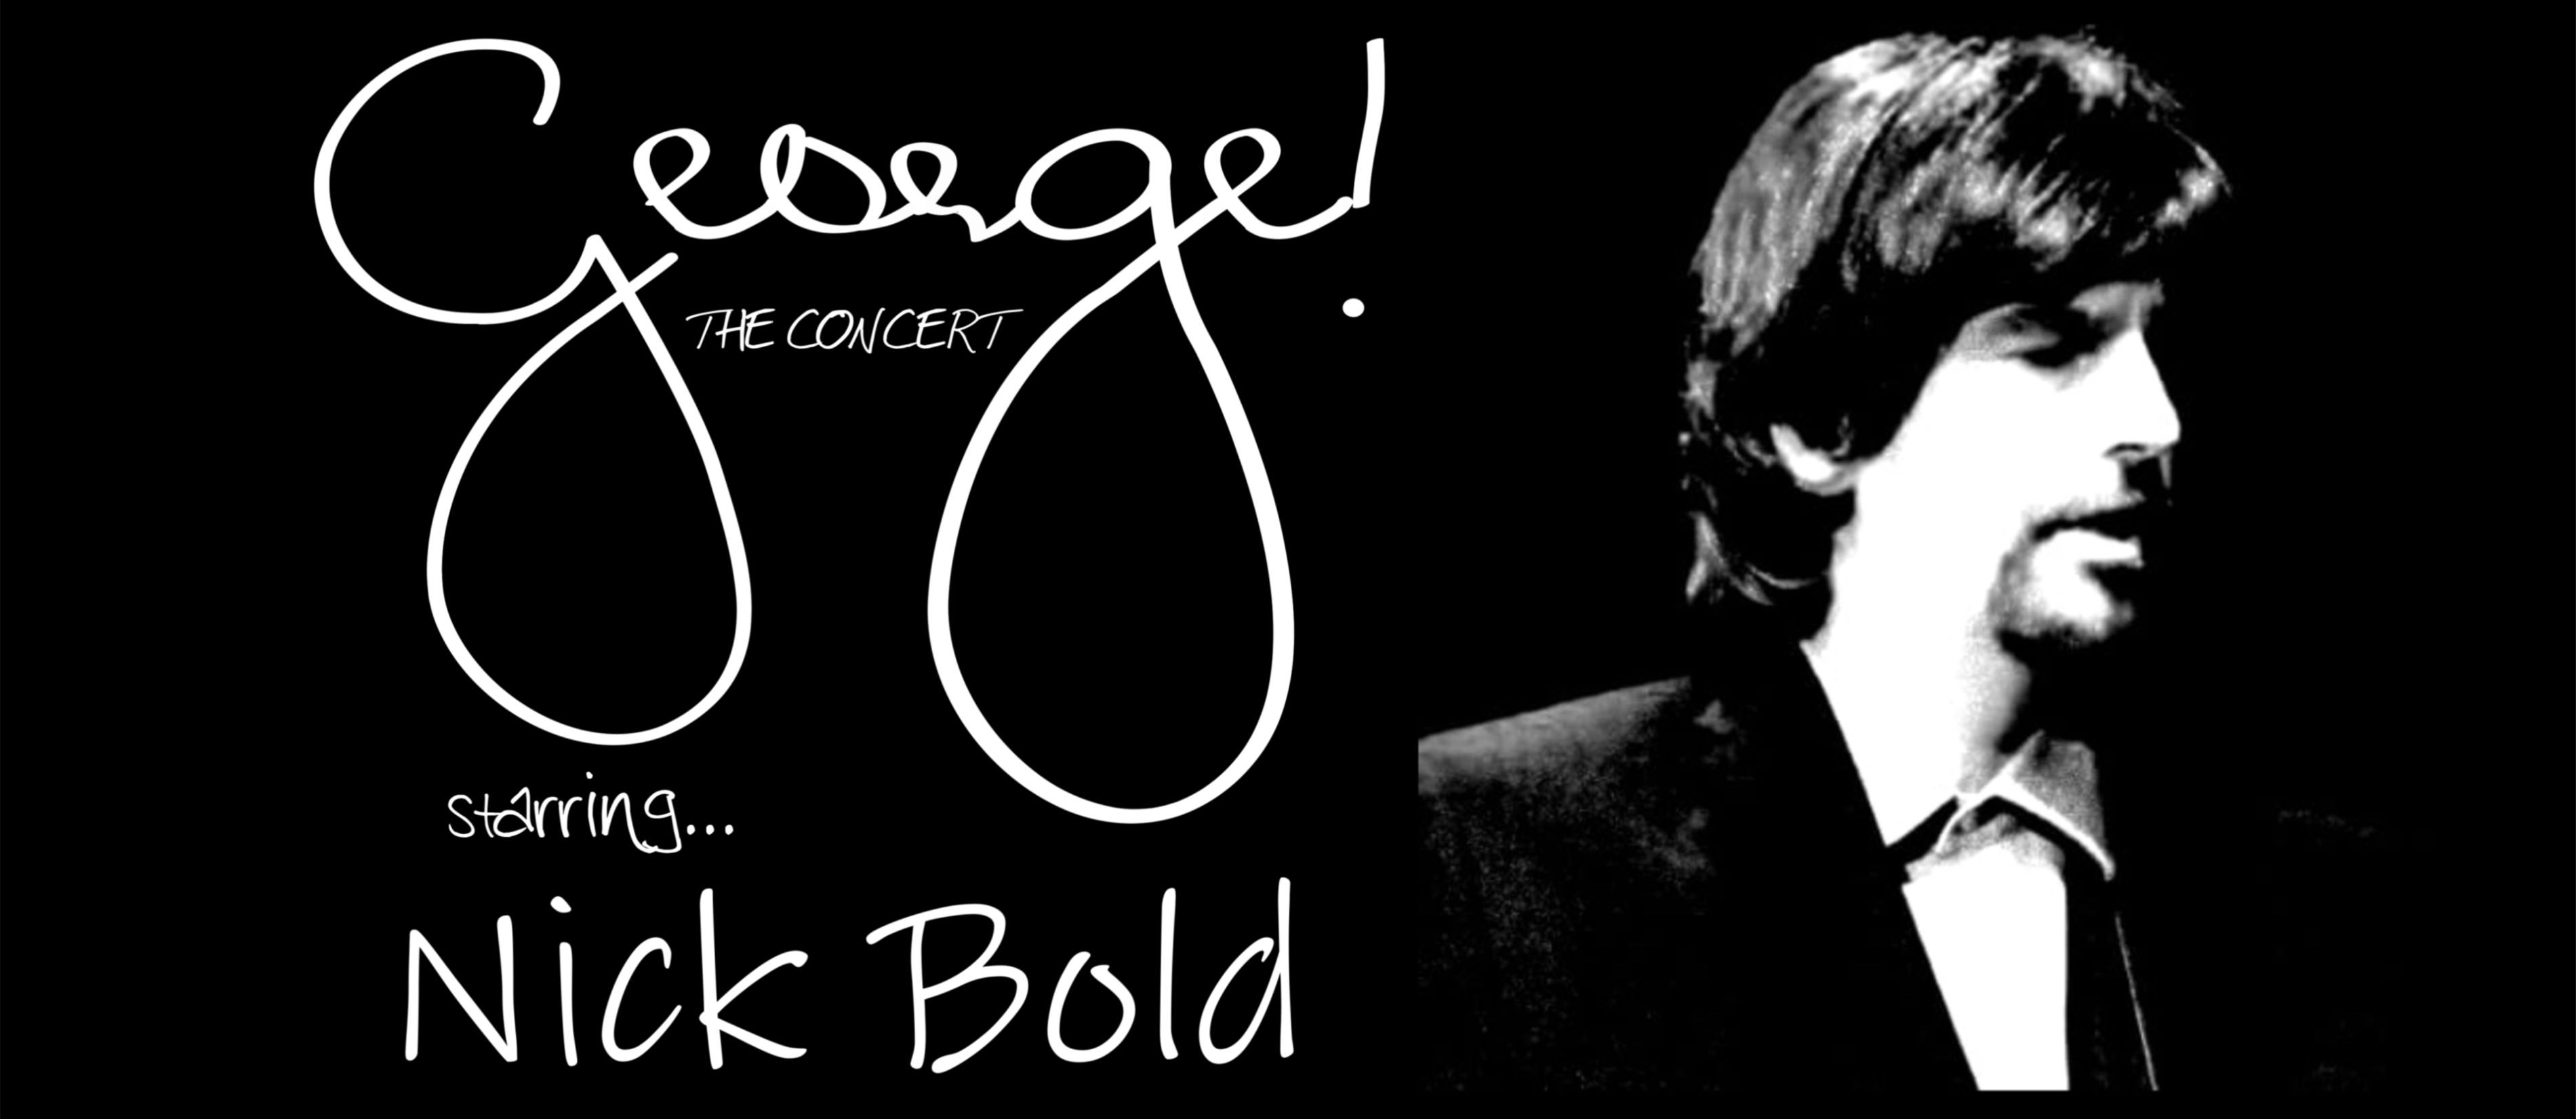 GEORGE! The Concert